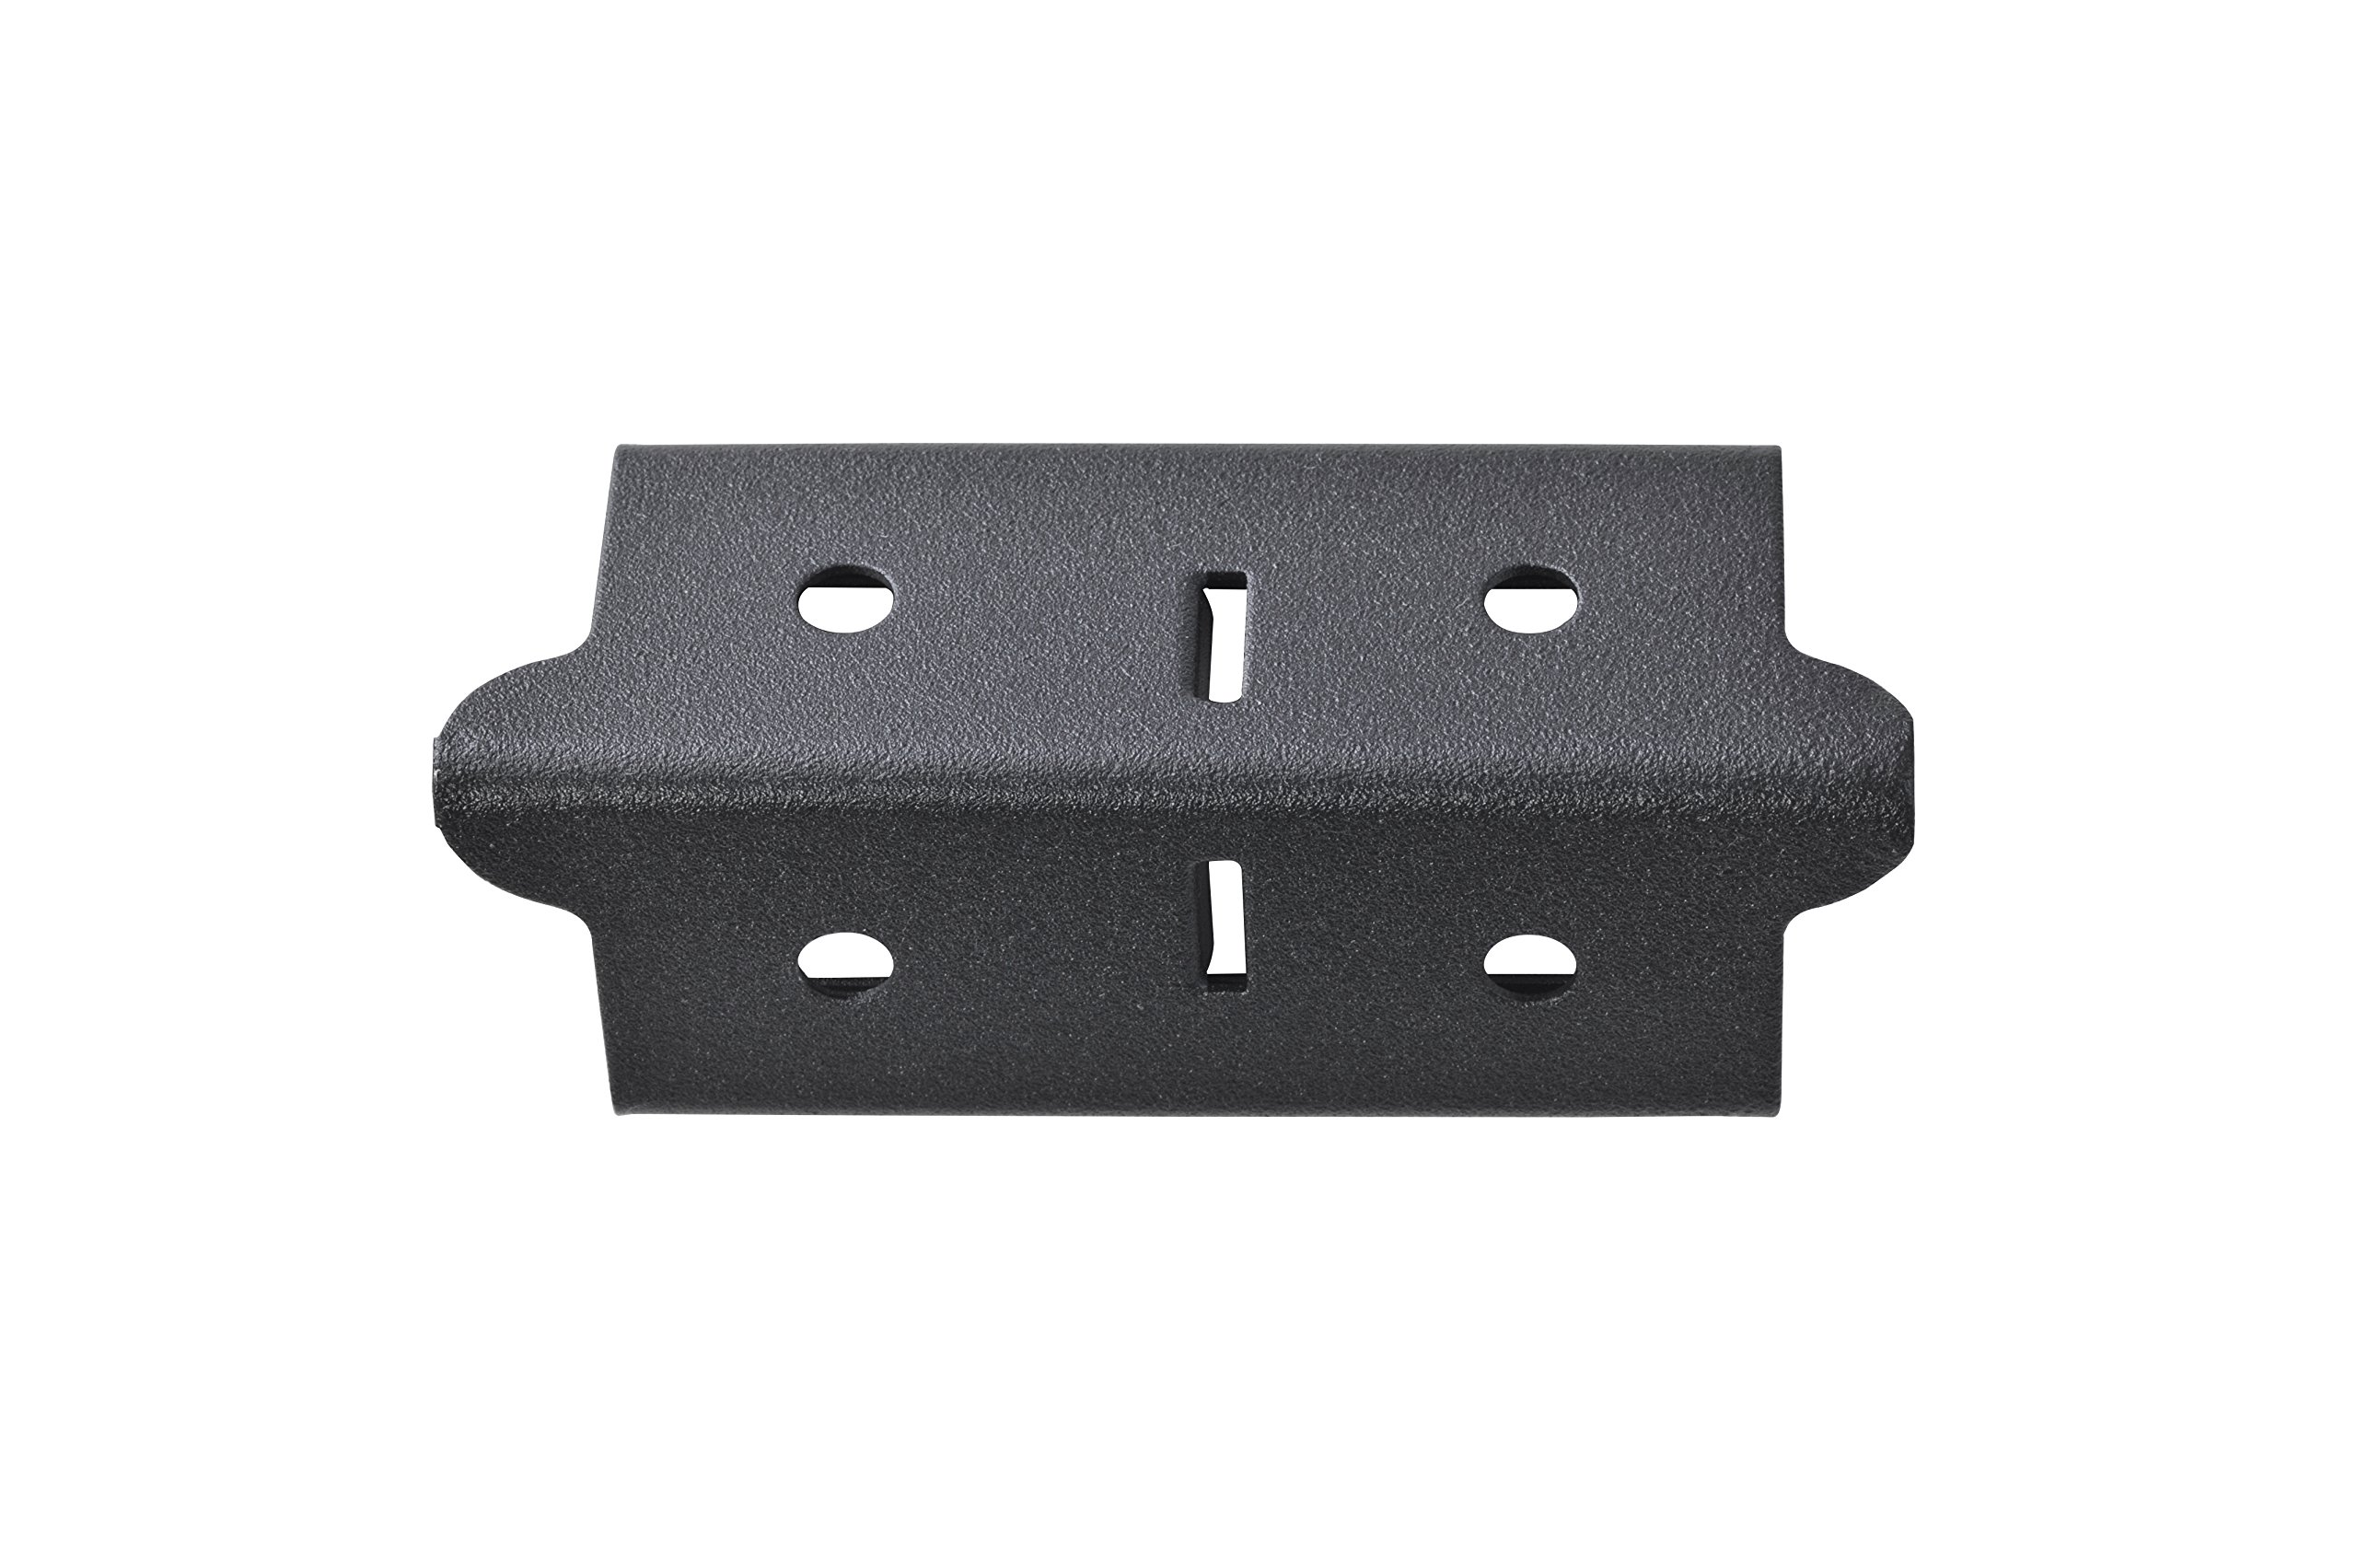 Edsal CPOUT-BLK-4 Muscle Rack Post Coupling Outer Black (4 Pack), 3'' Height, 1.5'' Width, 1.5'' Length (Pack of 4)